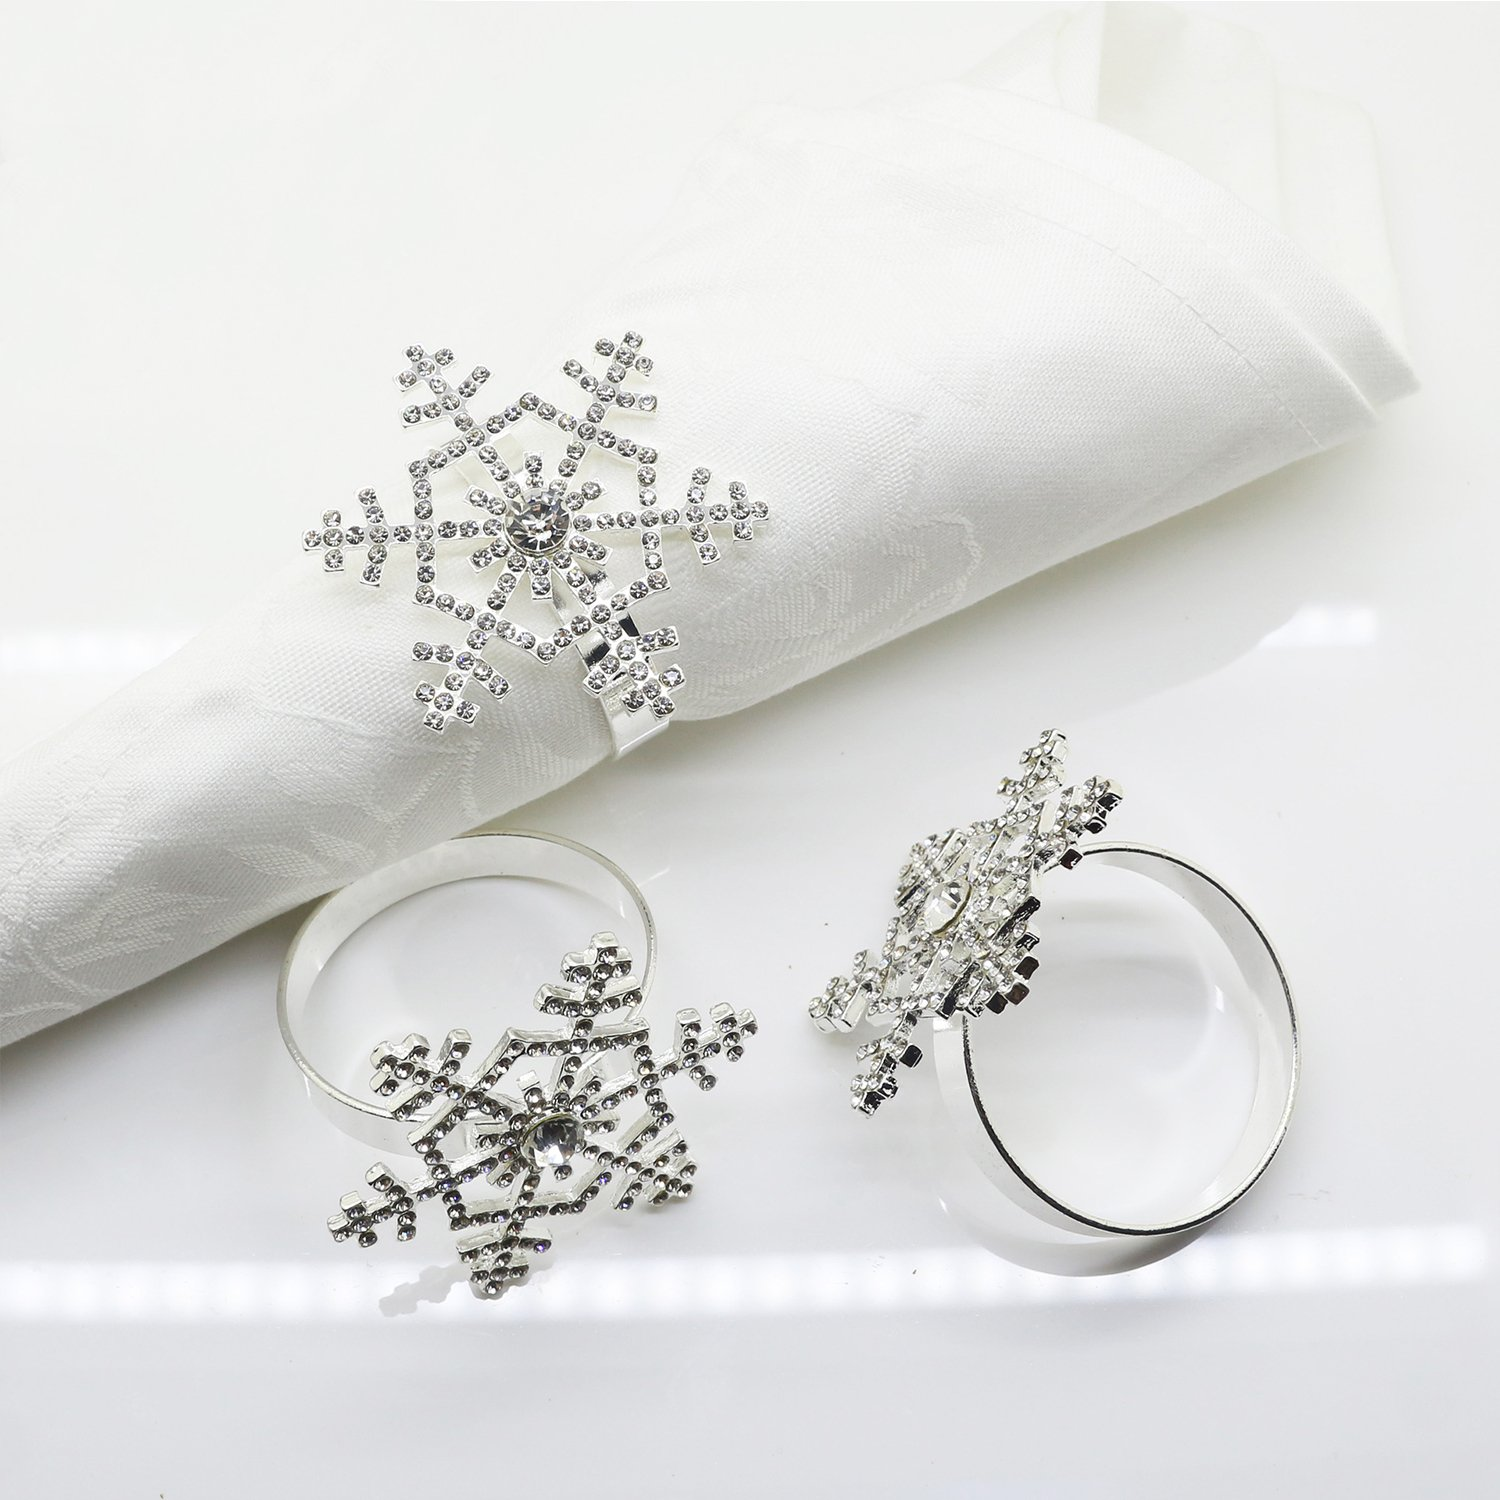 These Napkin Rings Add So Much Sparkle!